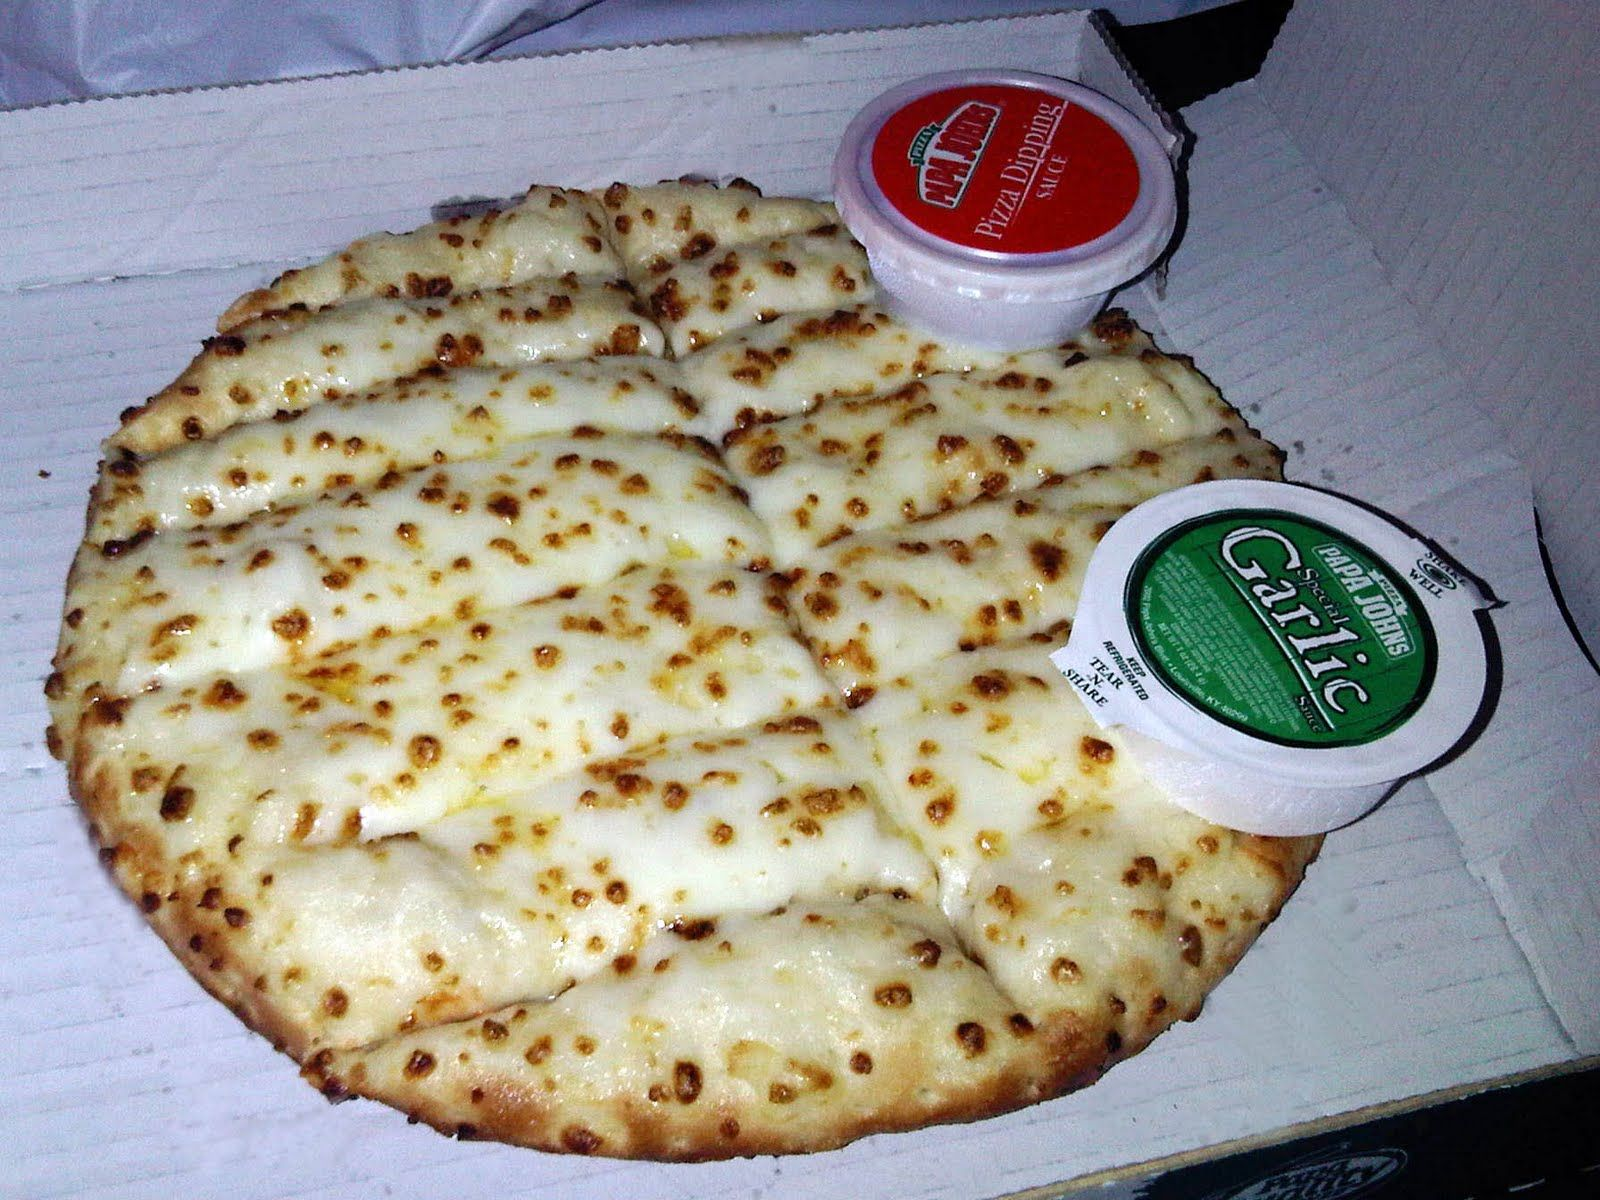 Free pizza coupons pizza hut specials dominos pizza papa john s pizza - Find This Pin And More On Papa John S Fans Papa John S Cheesesticks With Garlic And Pizza Sauce